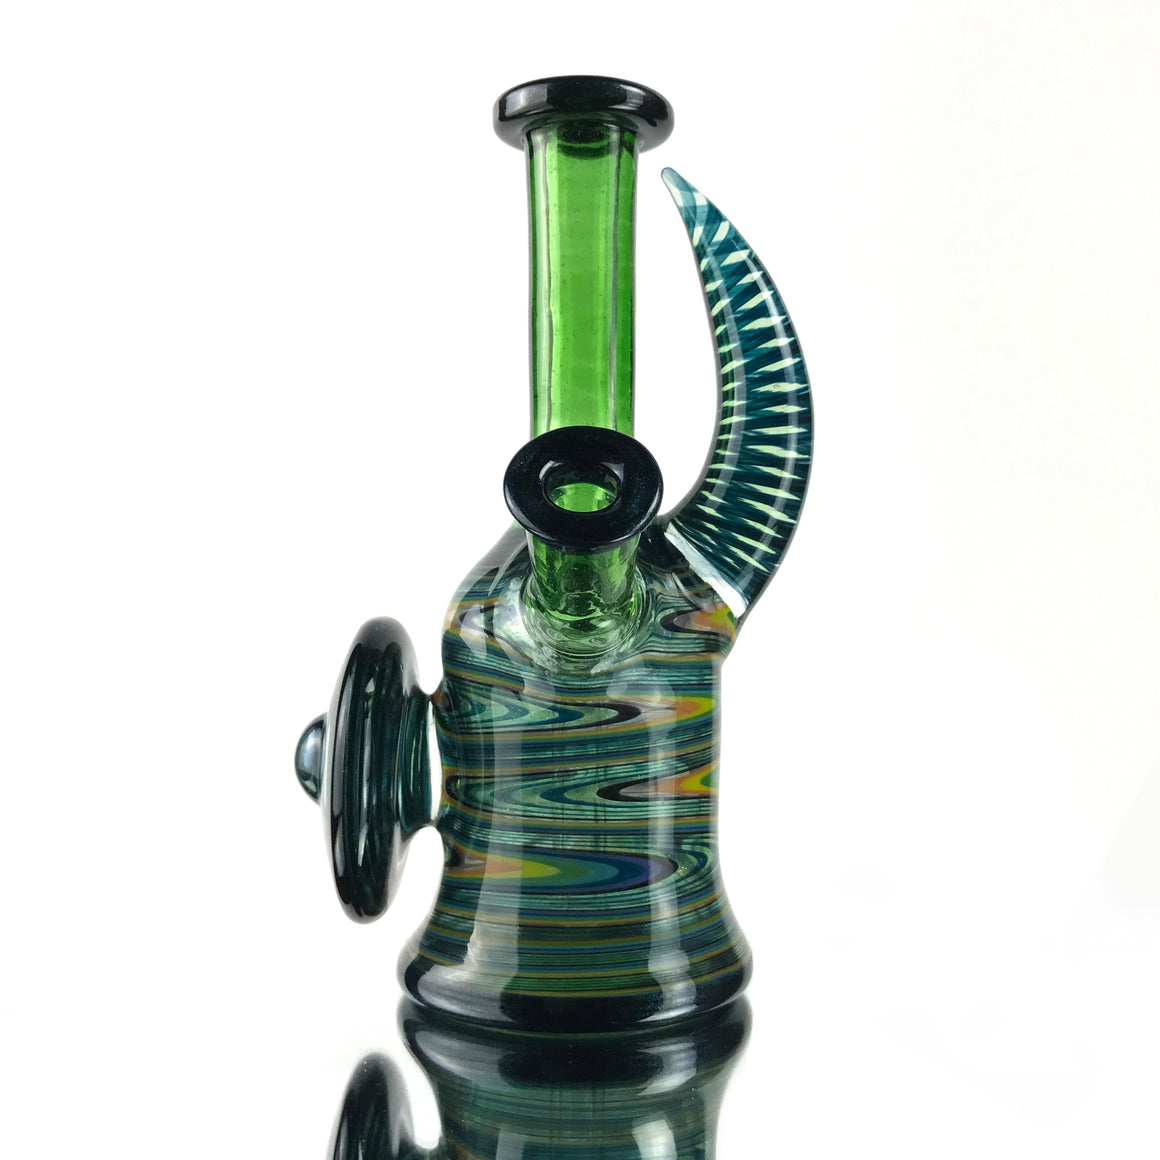 Fully-worked Shield & Horn Rig - Heavy Blue Stardust/Green Stardust Linework - 10mm Female